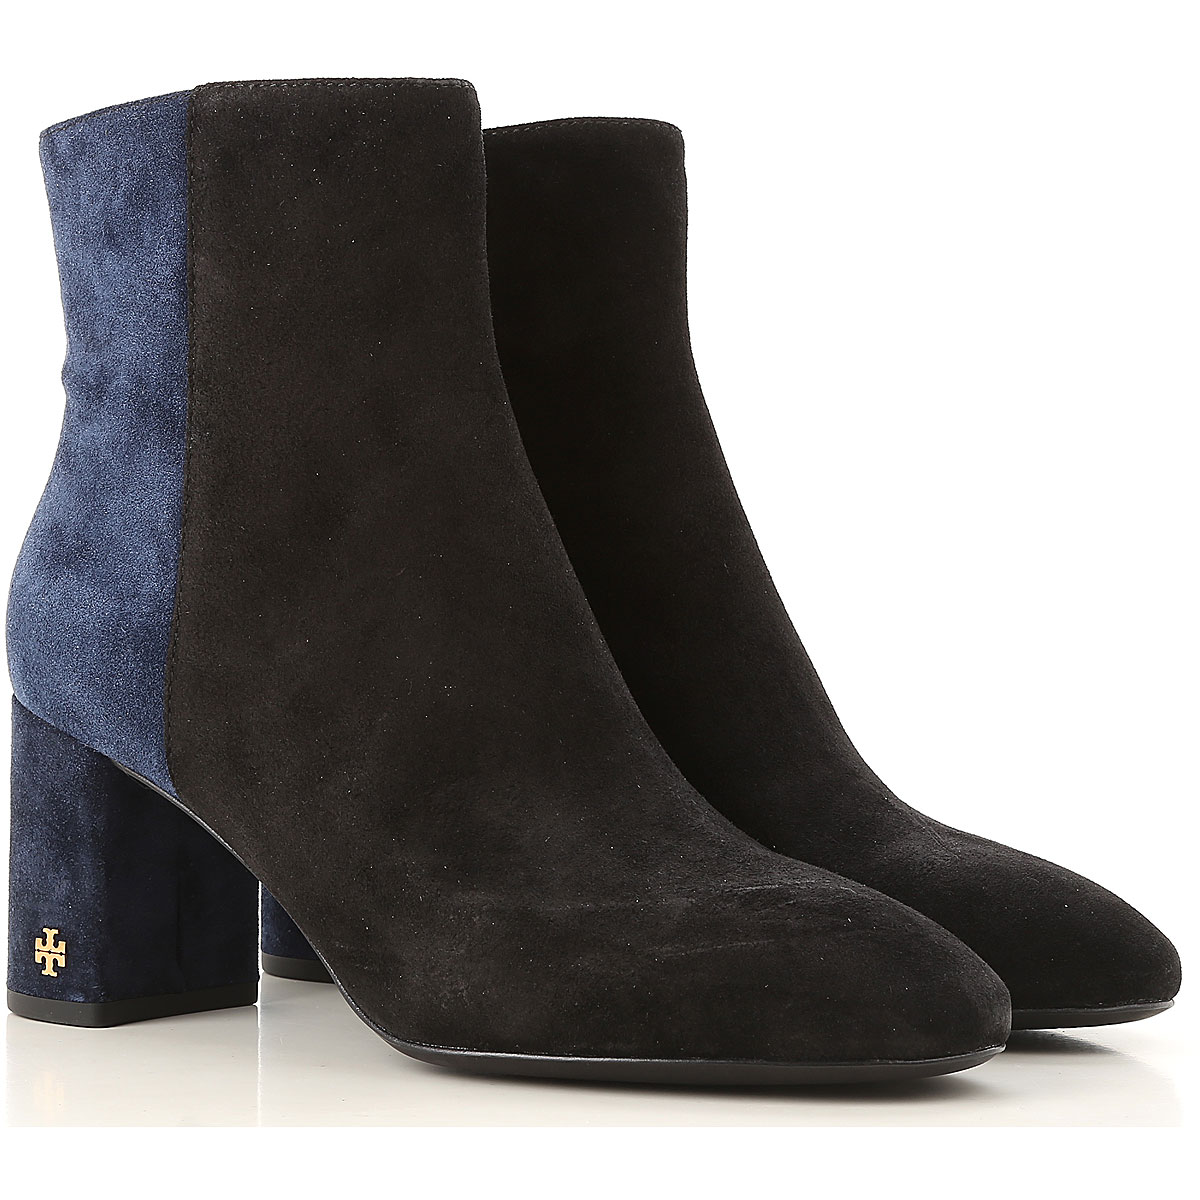 Tory Burch Boots for Women, Booties On Sale in Outlet, Perfect Black, Suede leather, 2019, 11 6